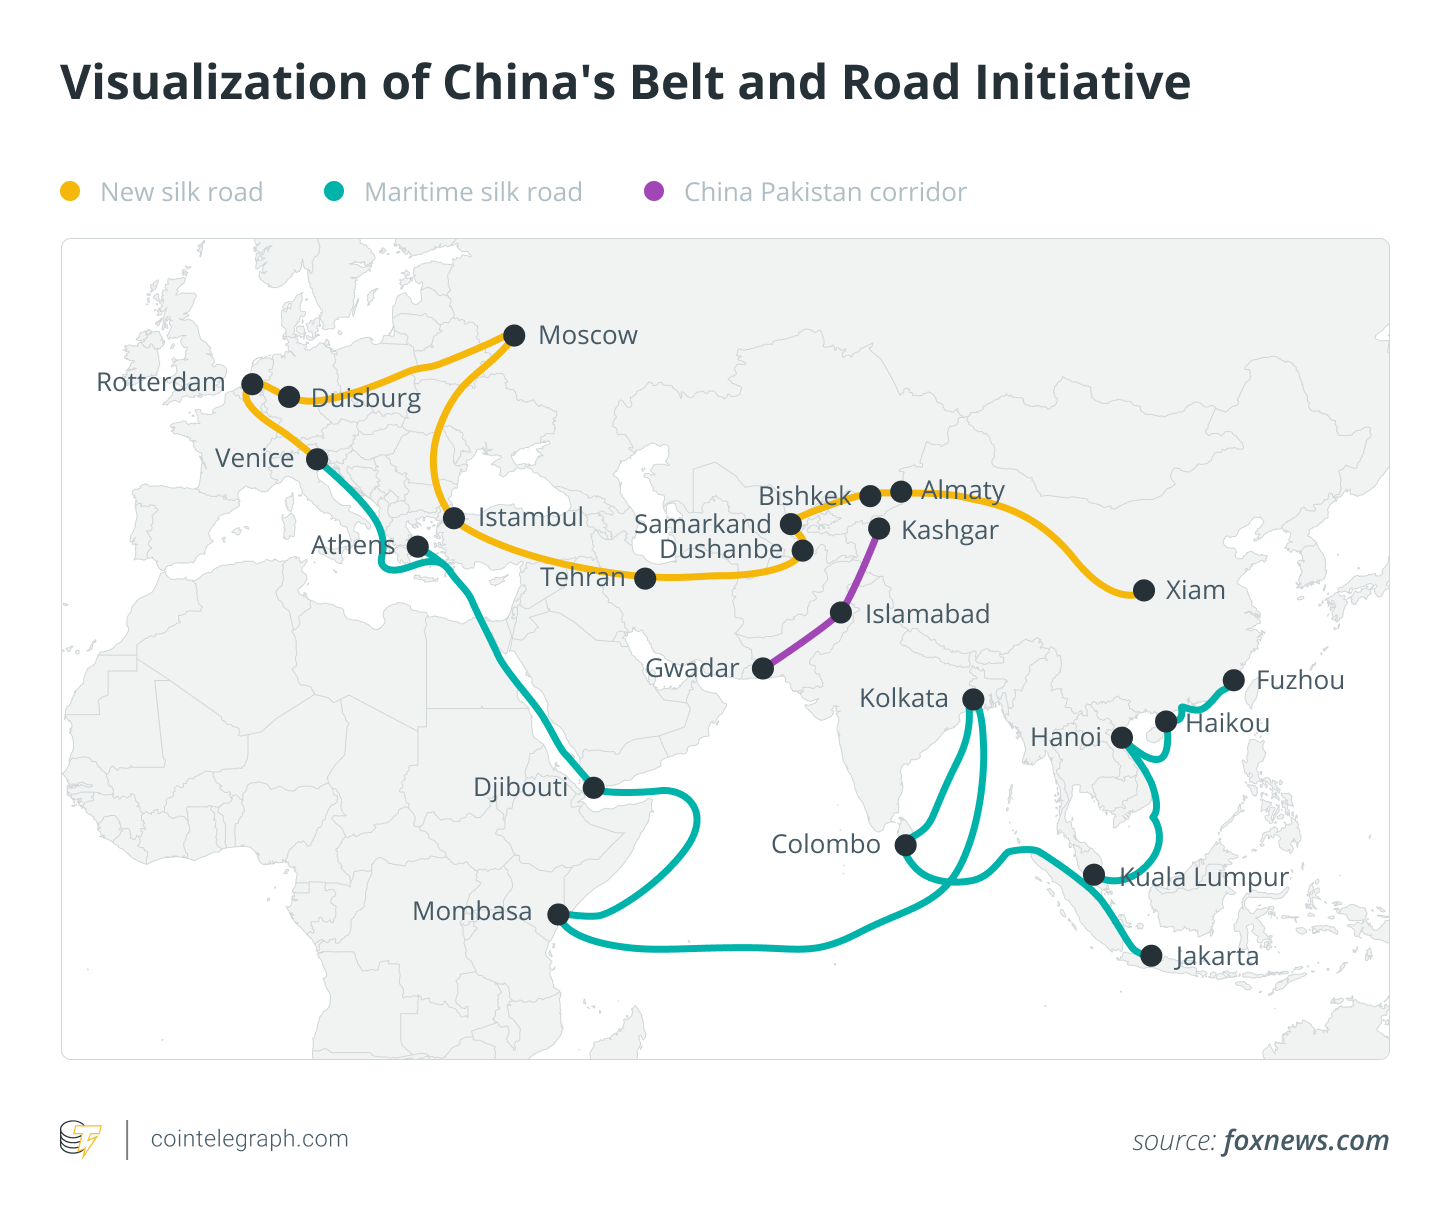 Visualization of China's Belt and Road Initiative